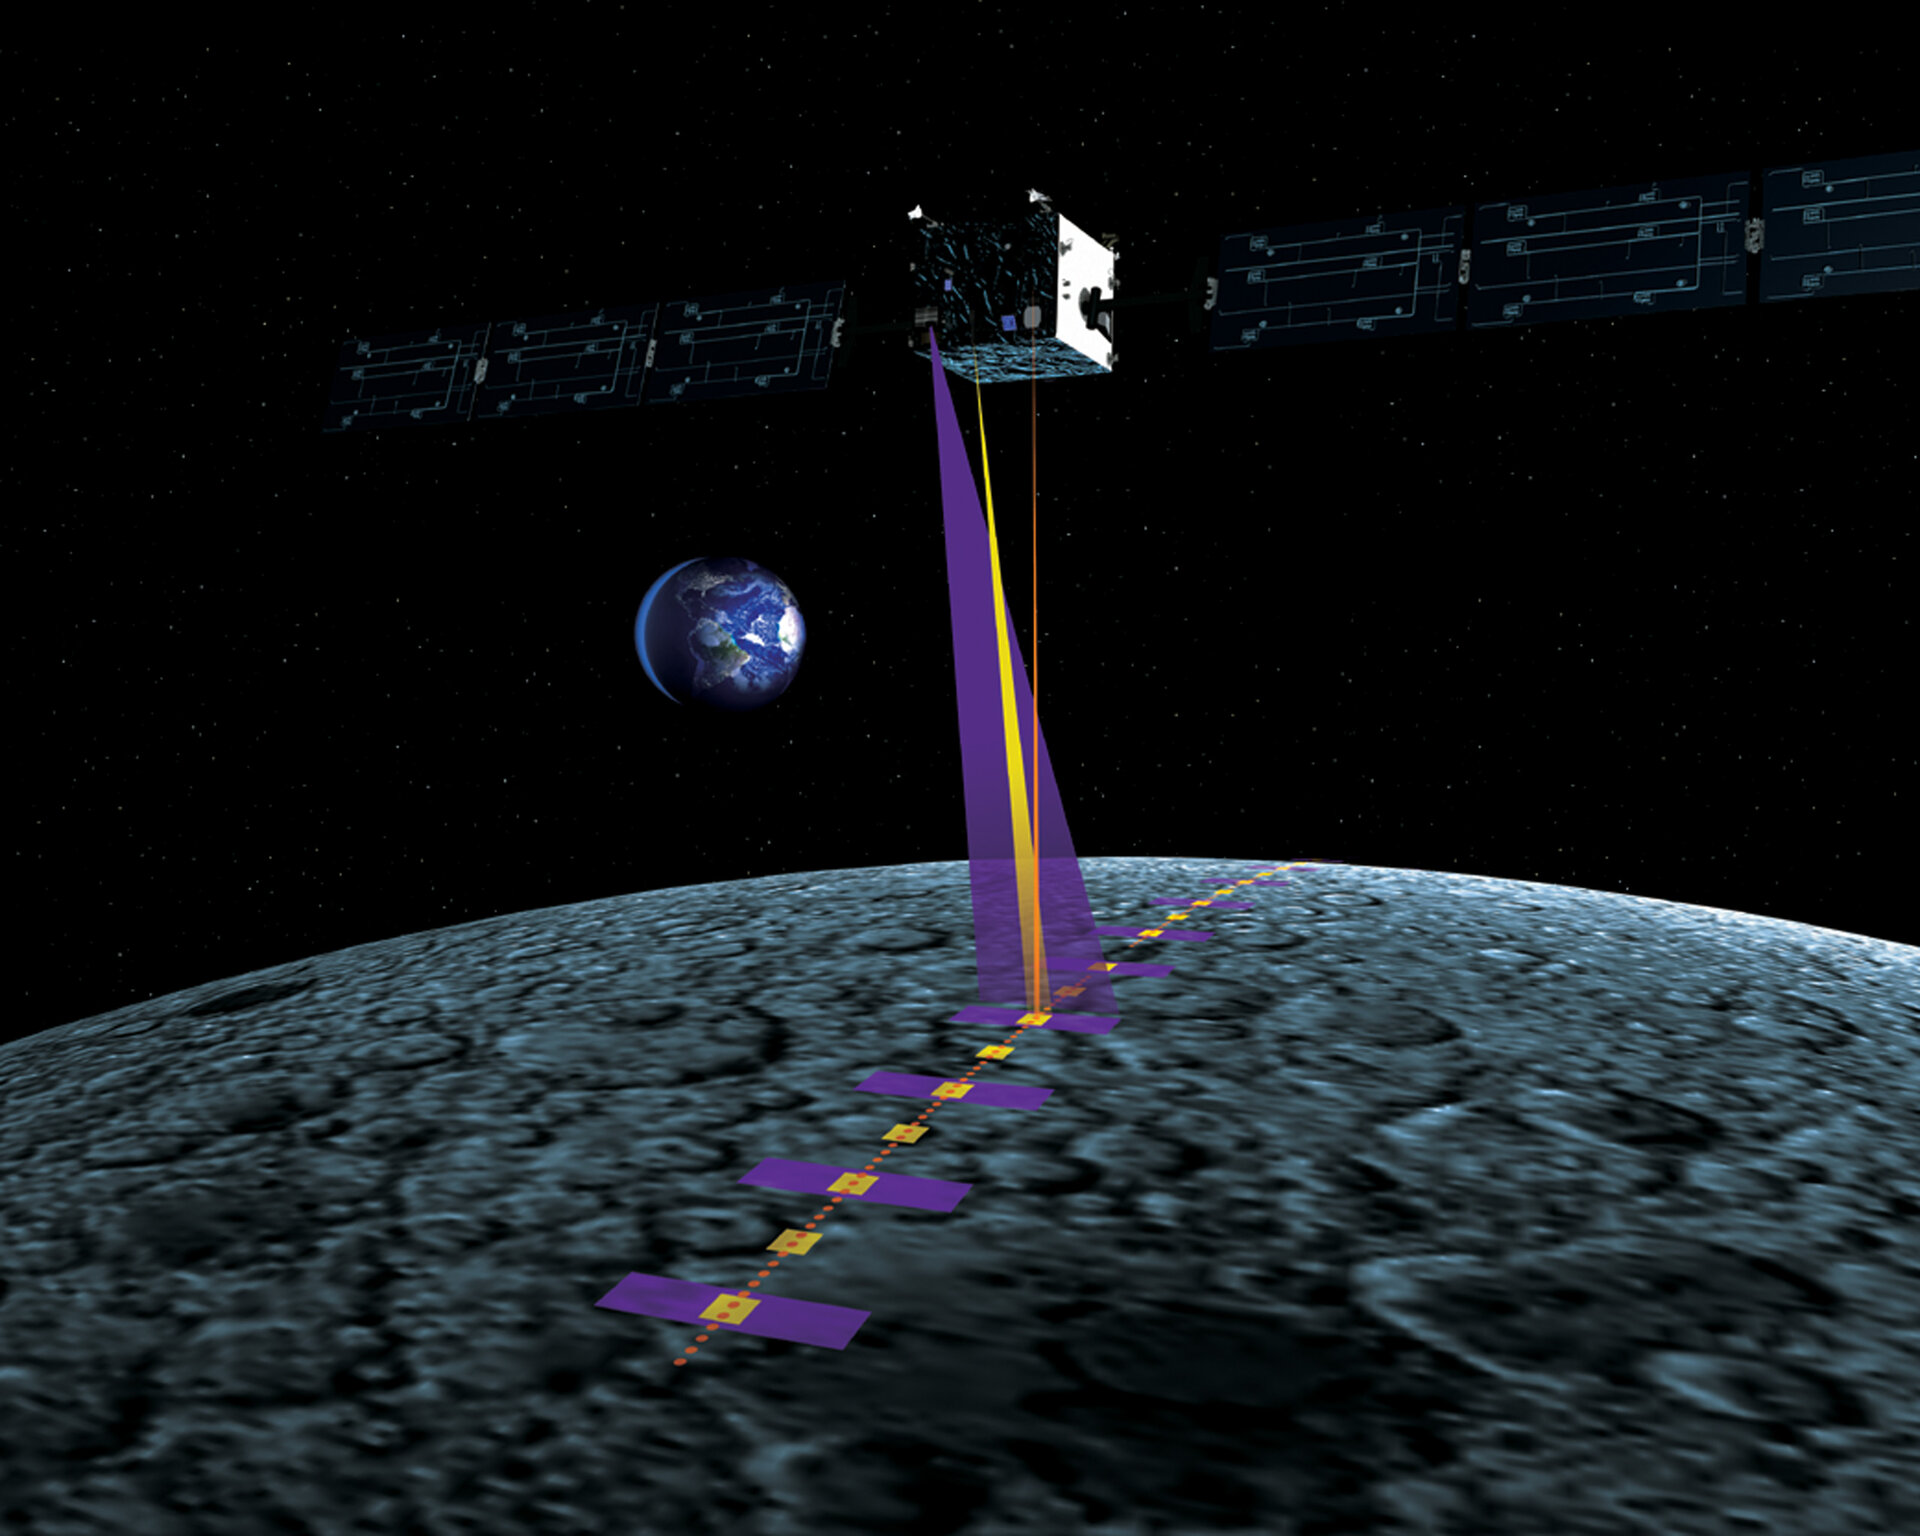 Remote-sensing instruments on SMART-1 scan the Moon's surface